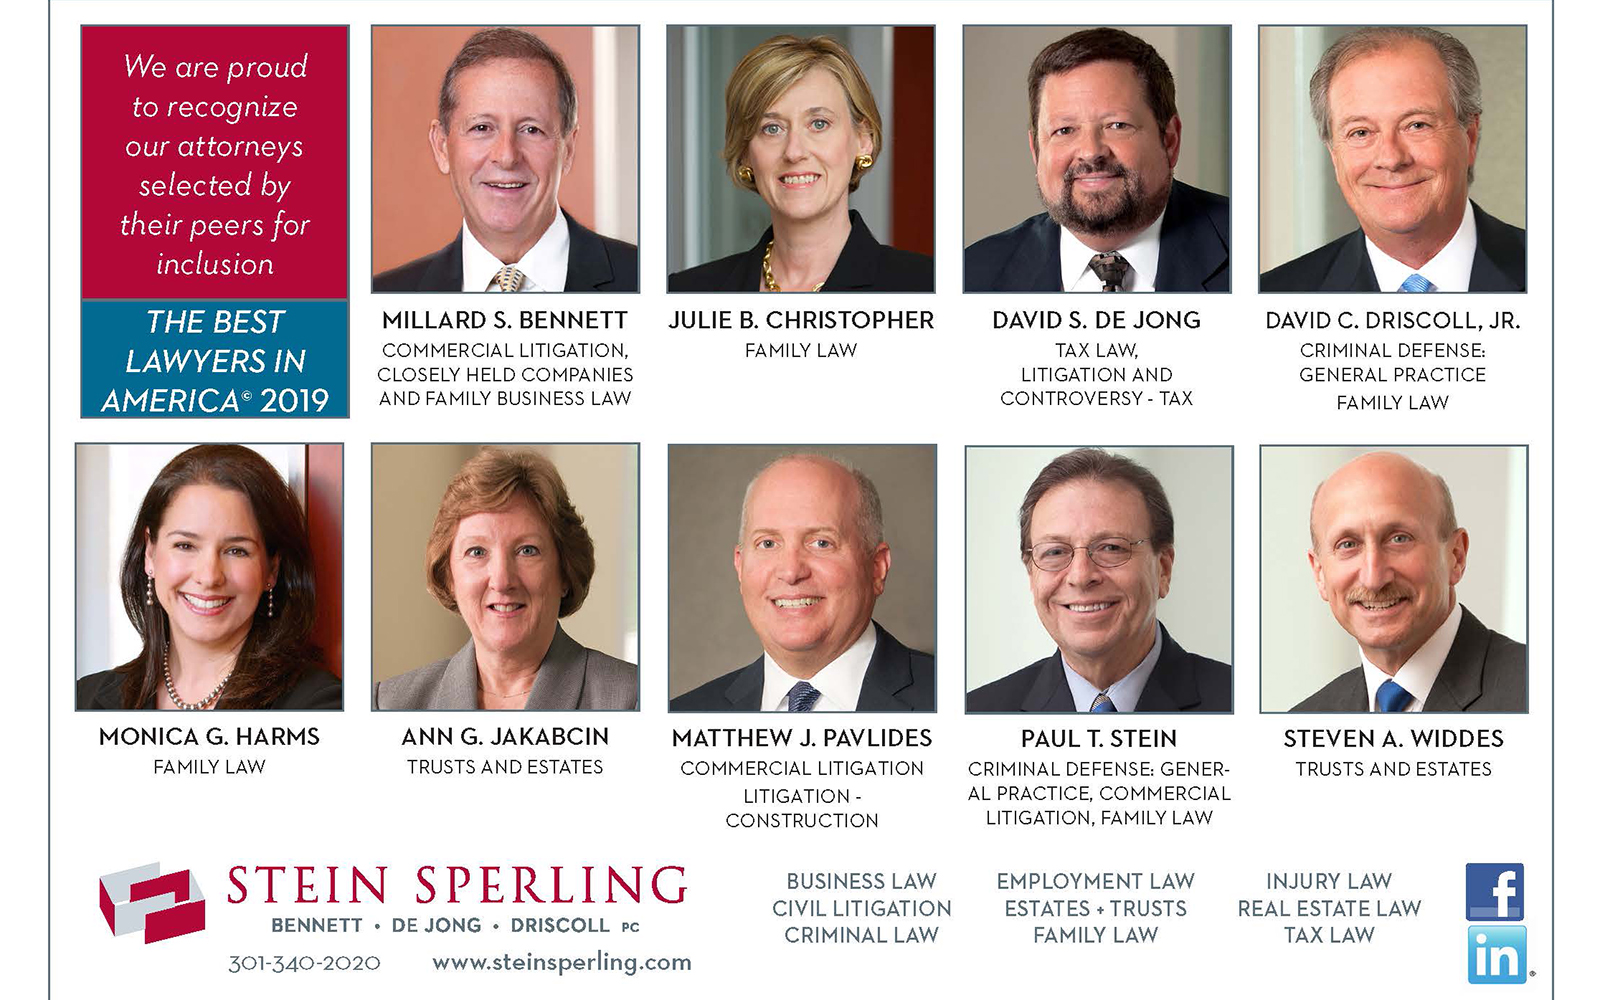 Best Lawyers in America recognizes Nine Stein Sperling attorneys